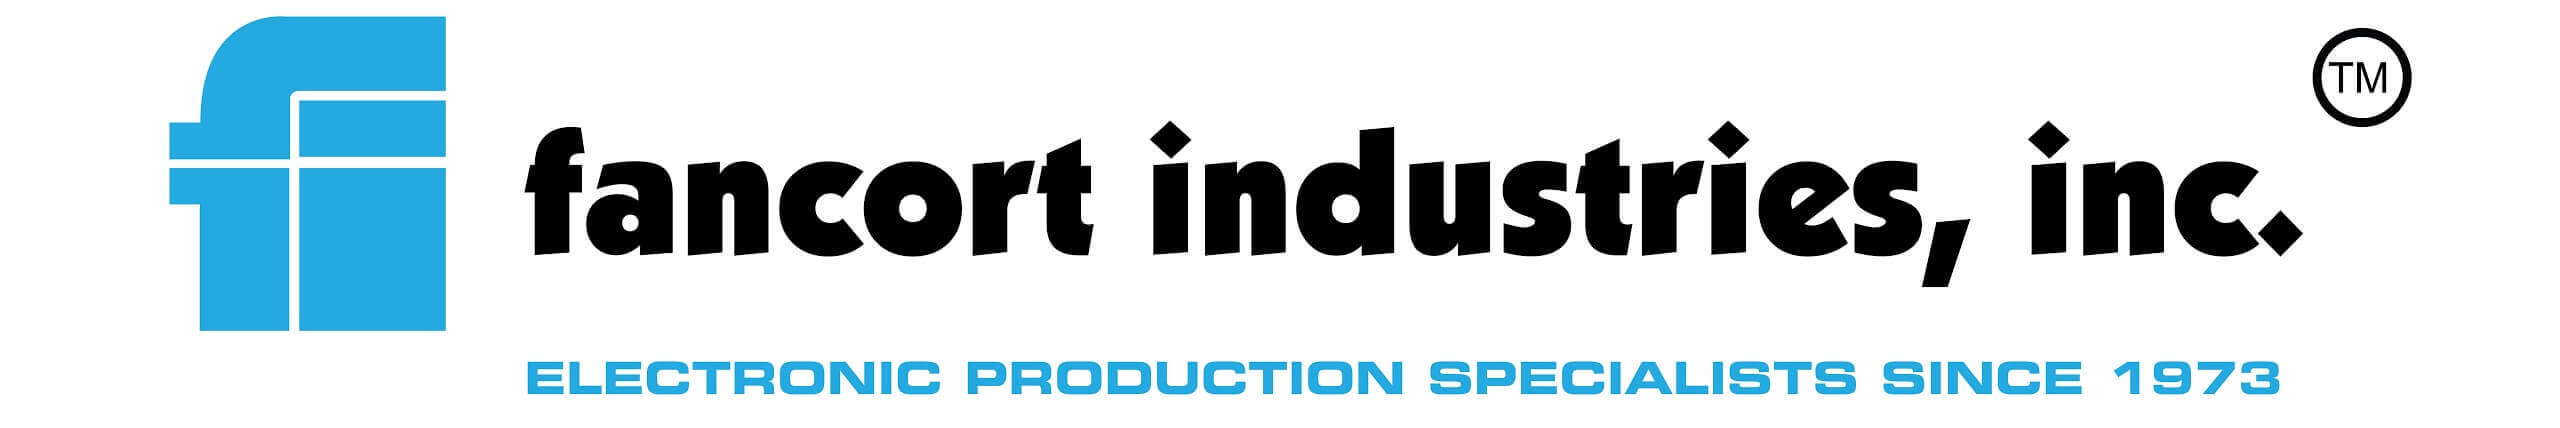 Fancort Industries